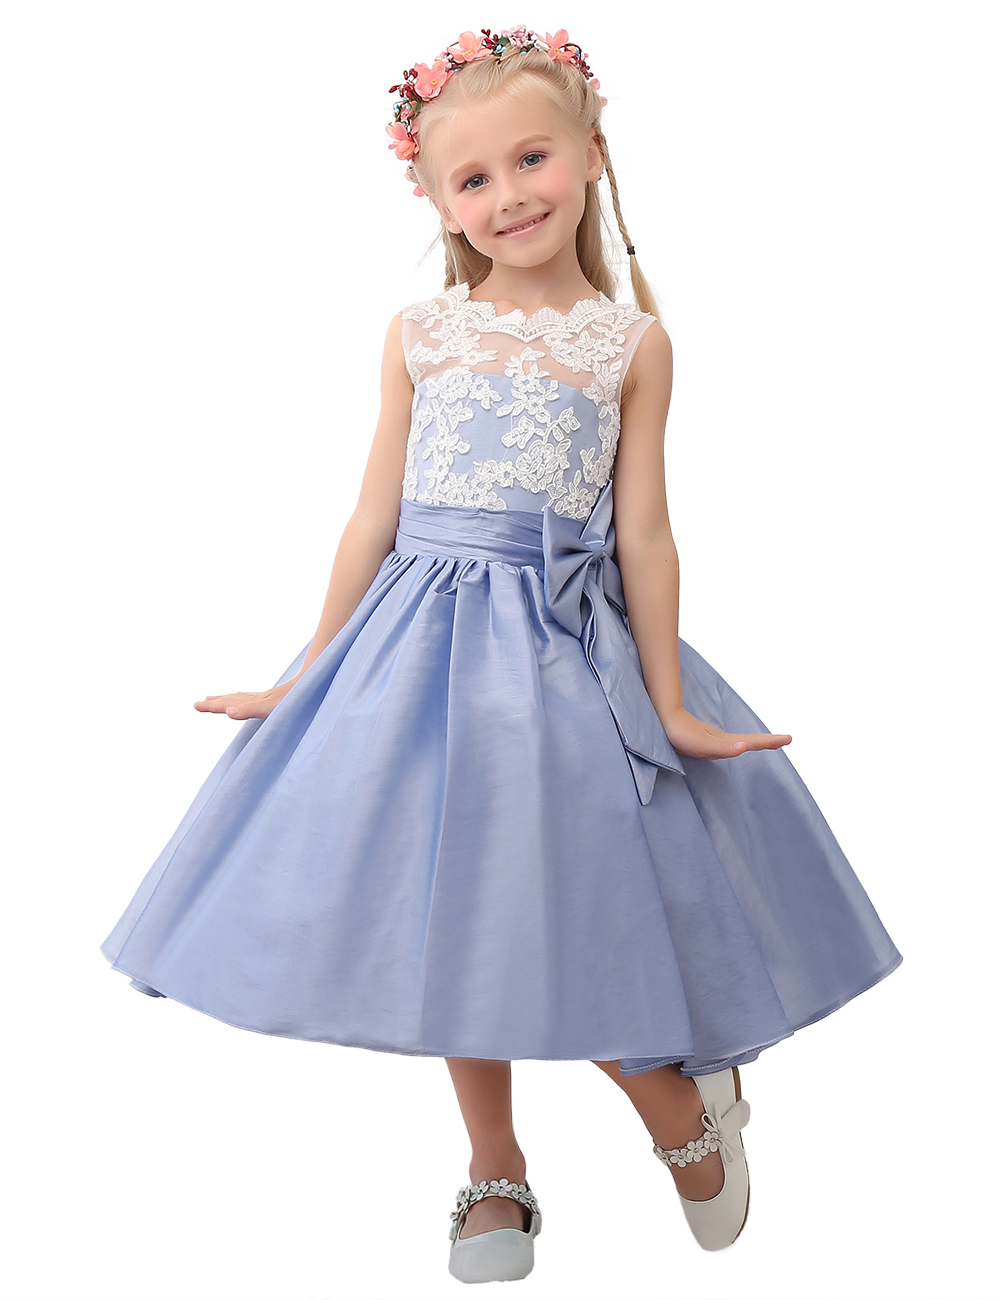 Blue Flower Girl Dress Lace Flower Girl Dress Girls Dresses Cheap